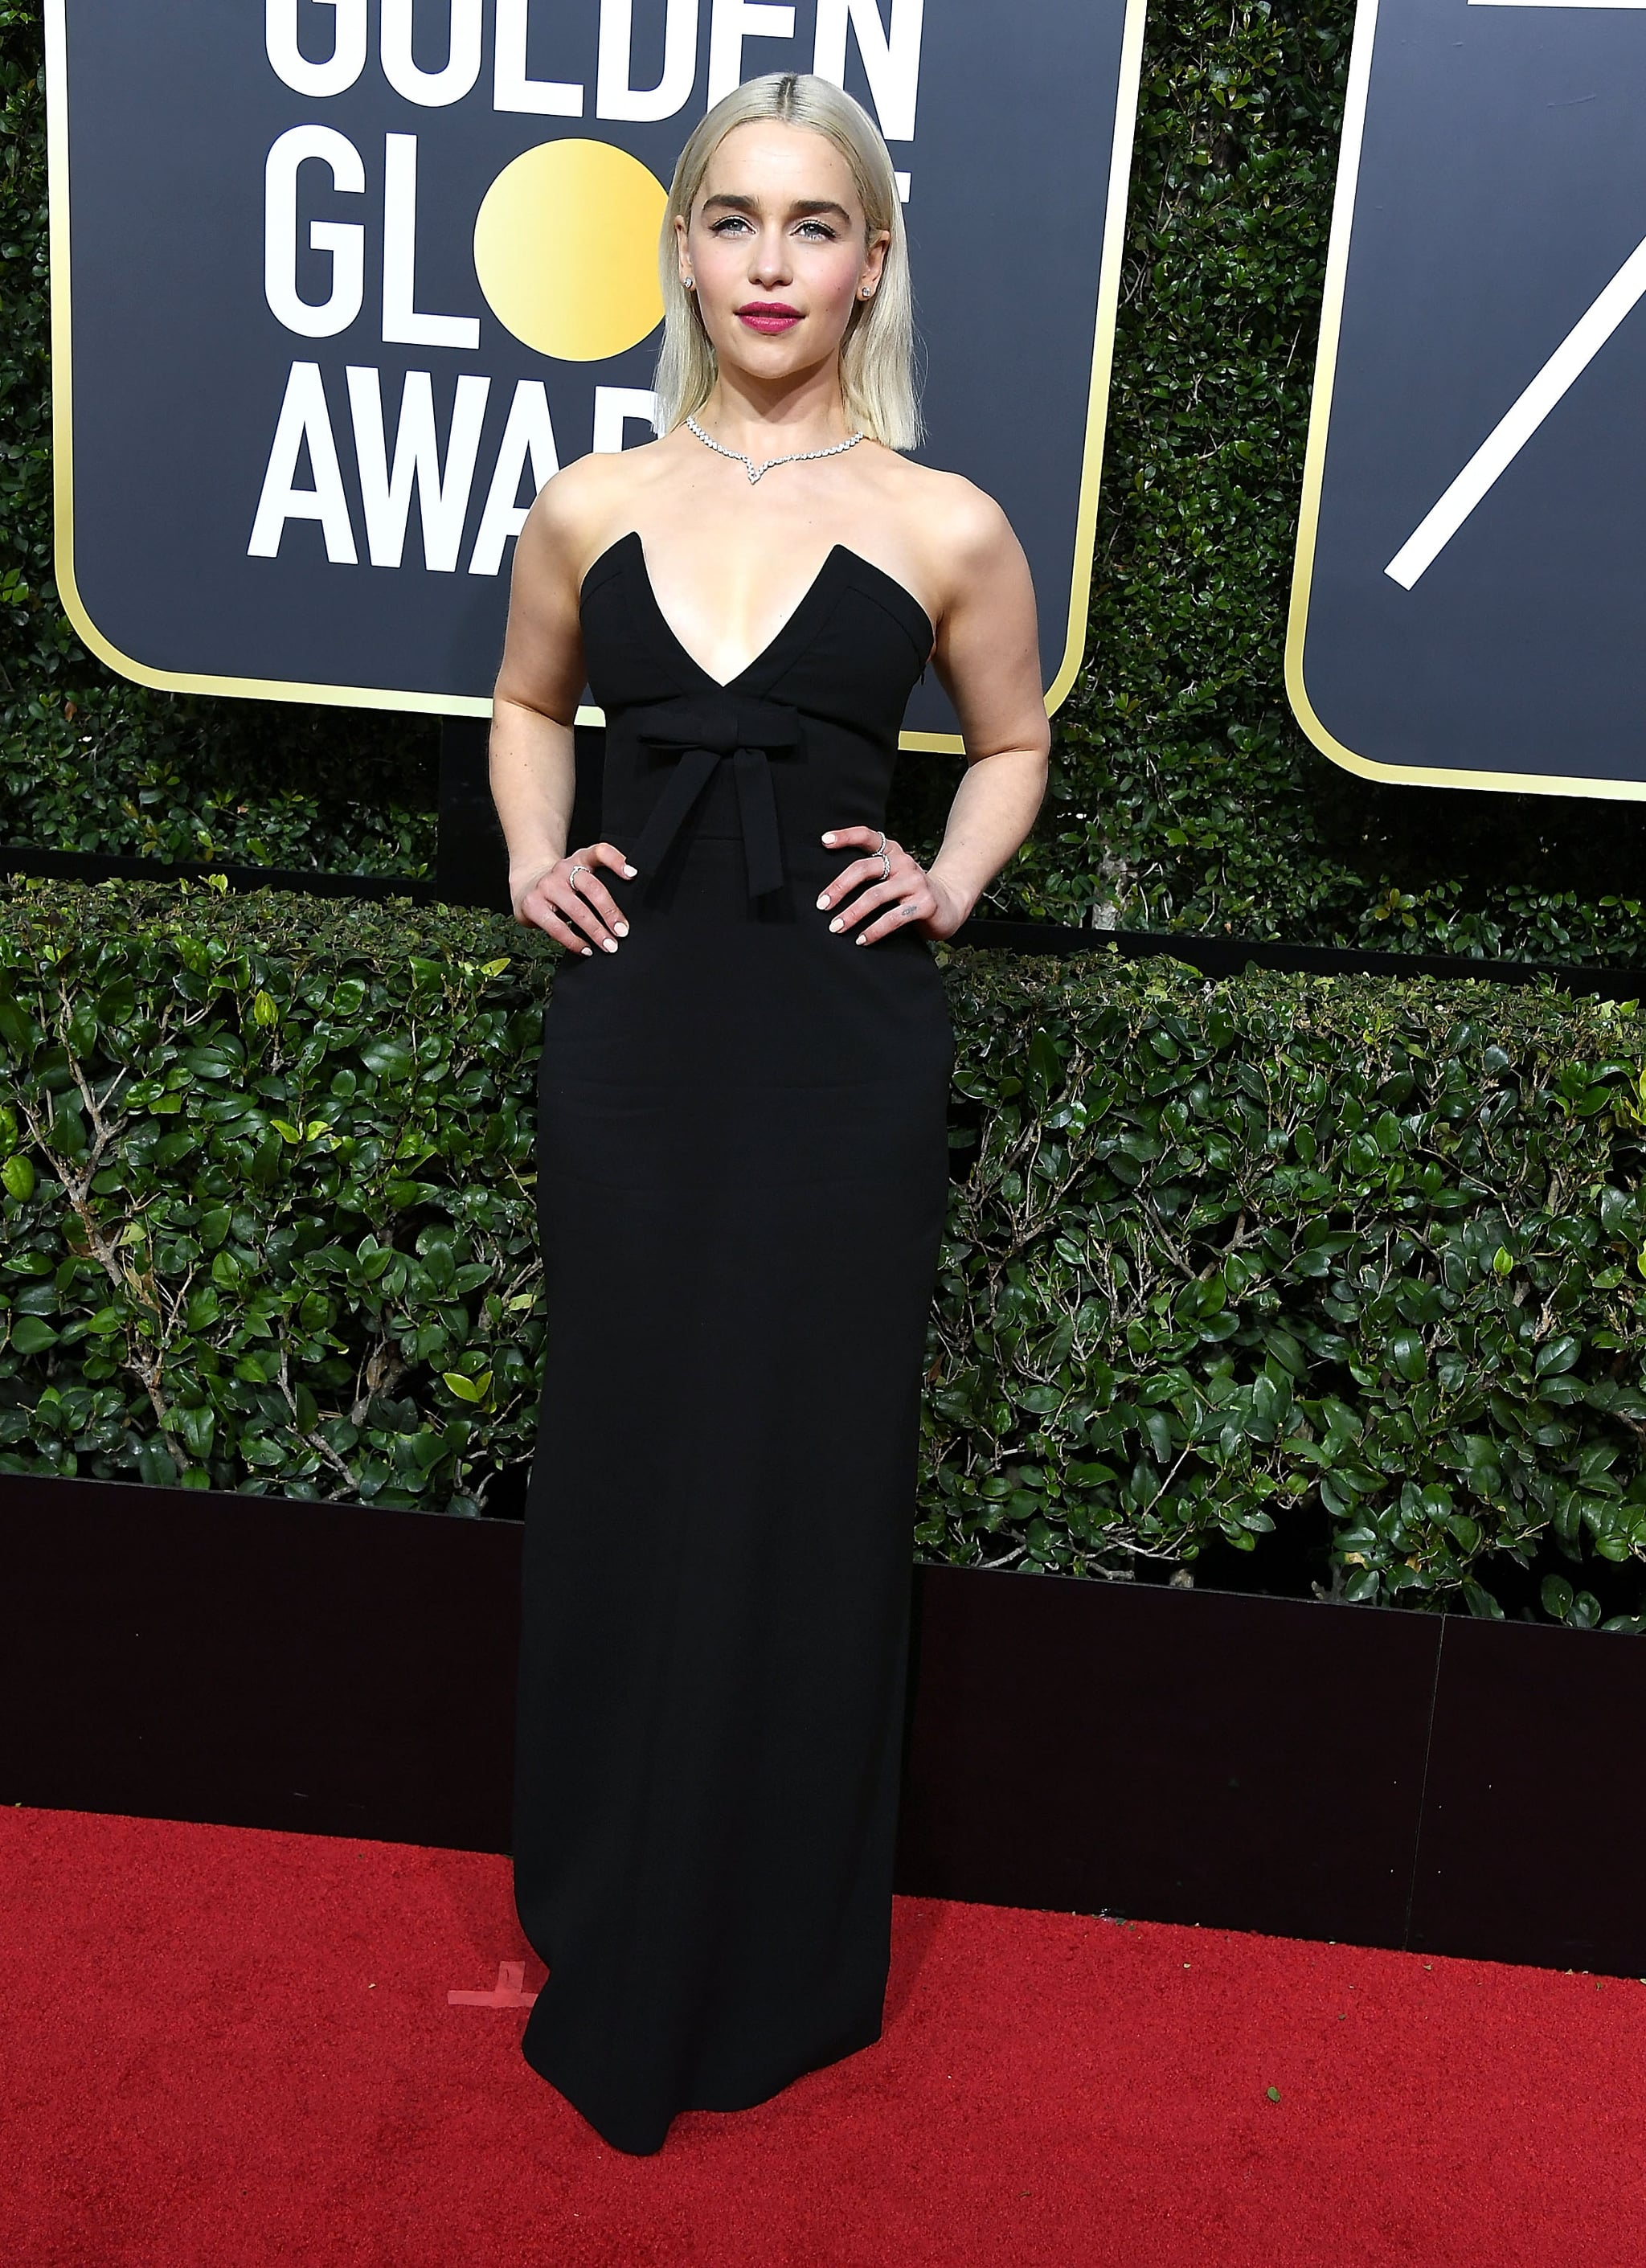 BEVERLY HILLS, CA - JANUARY 07:  Emilia Clarke arrives at the 75th Annual Golden Globe Awards at The Beverly Hilton Hotel on January 7, 2018 in Beverly Hills, California.  (Photo by Steve Granitz/WireImage)